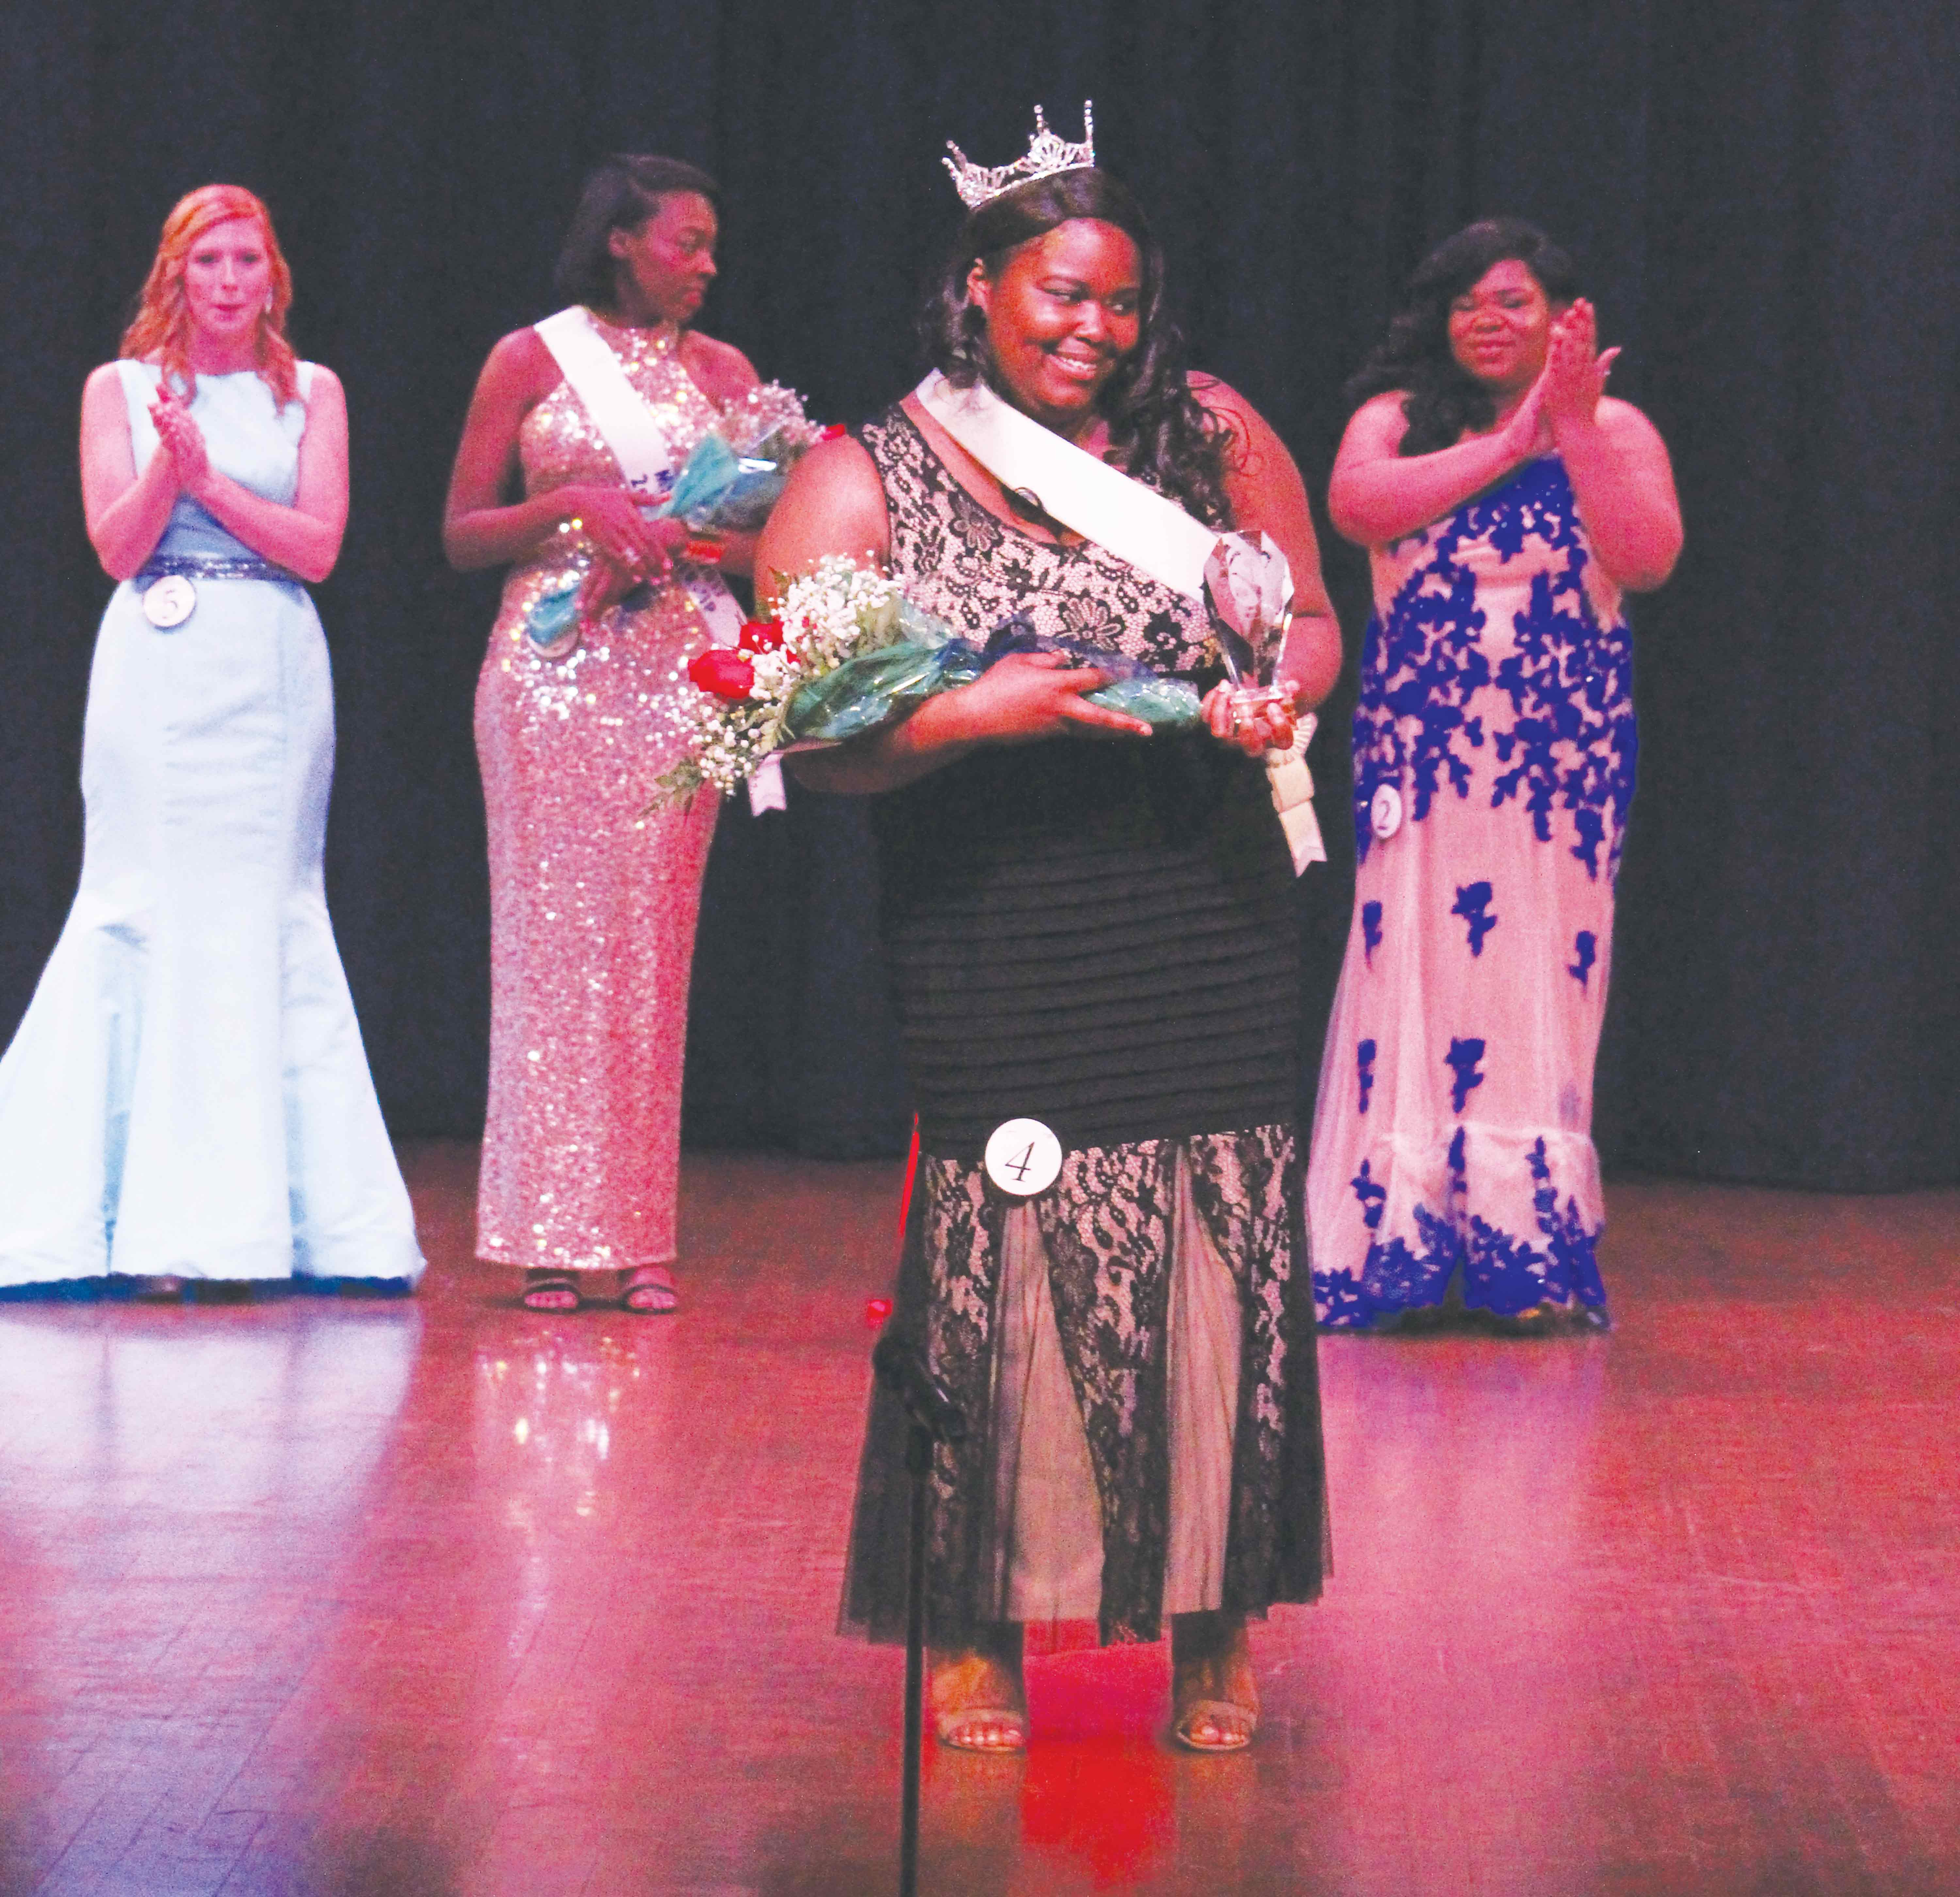 Junior Marcedes Smith plans to use Ms. FMU to encourage college and high school students to have confidence.